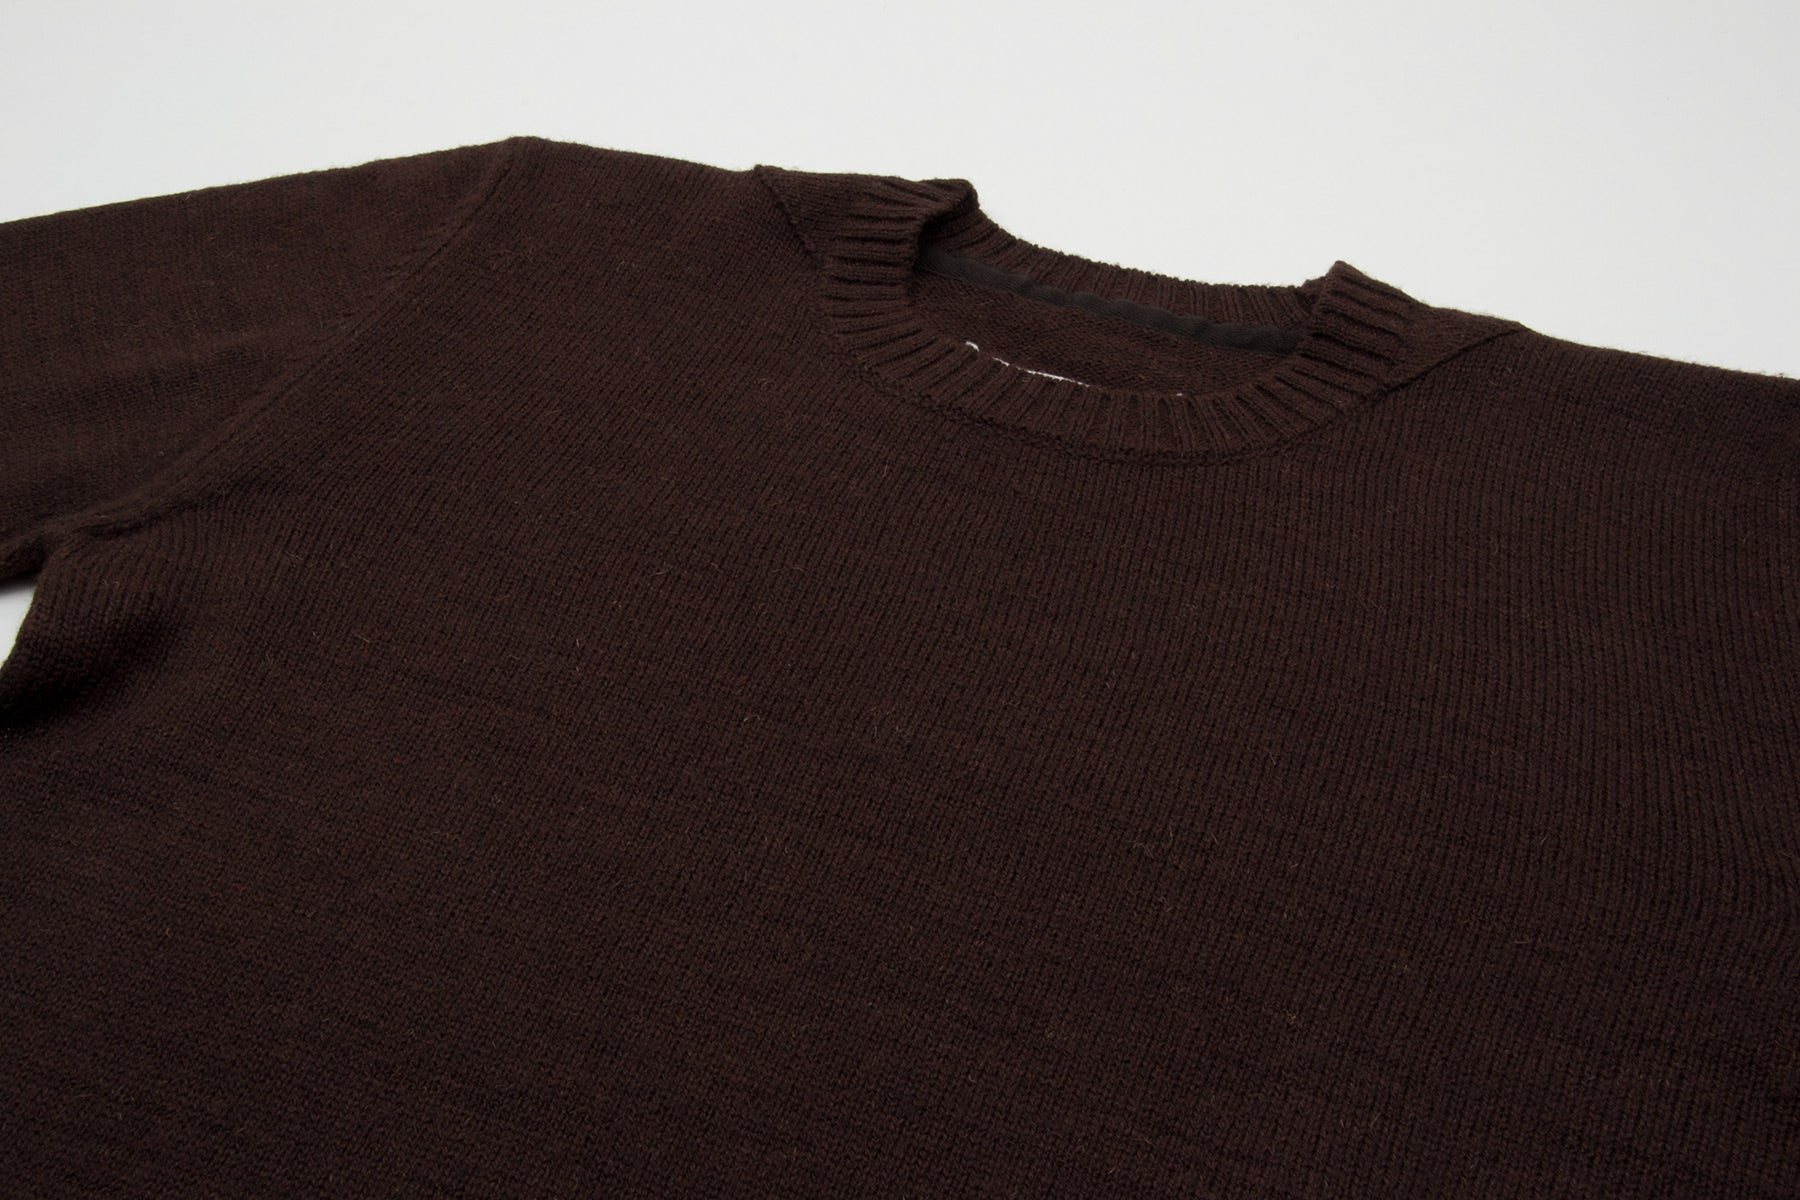 2002 A/W WOOL SWEATER WITH SHOULDER DETAIL BY MISS DEANNA